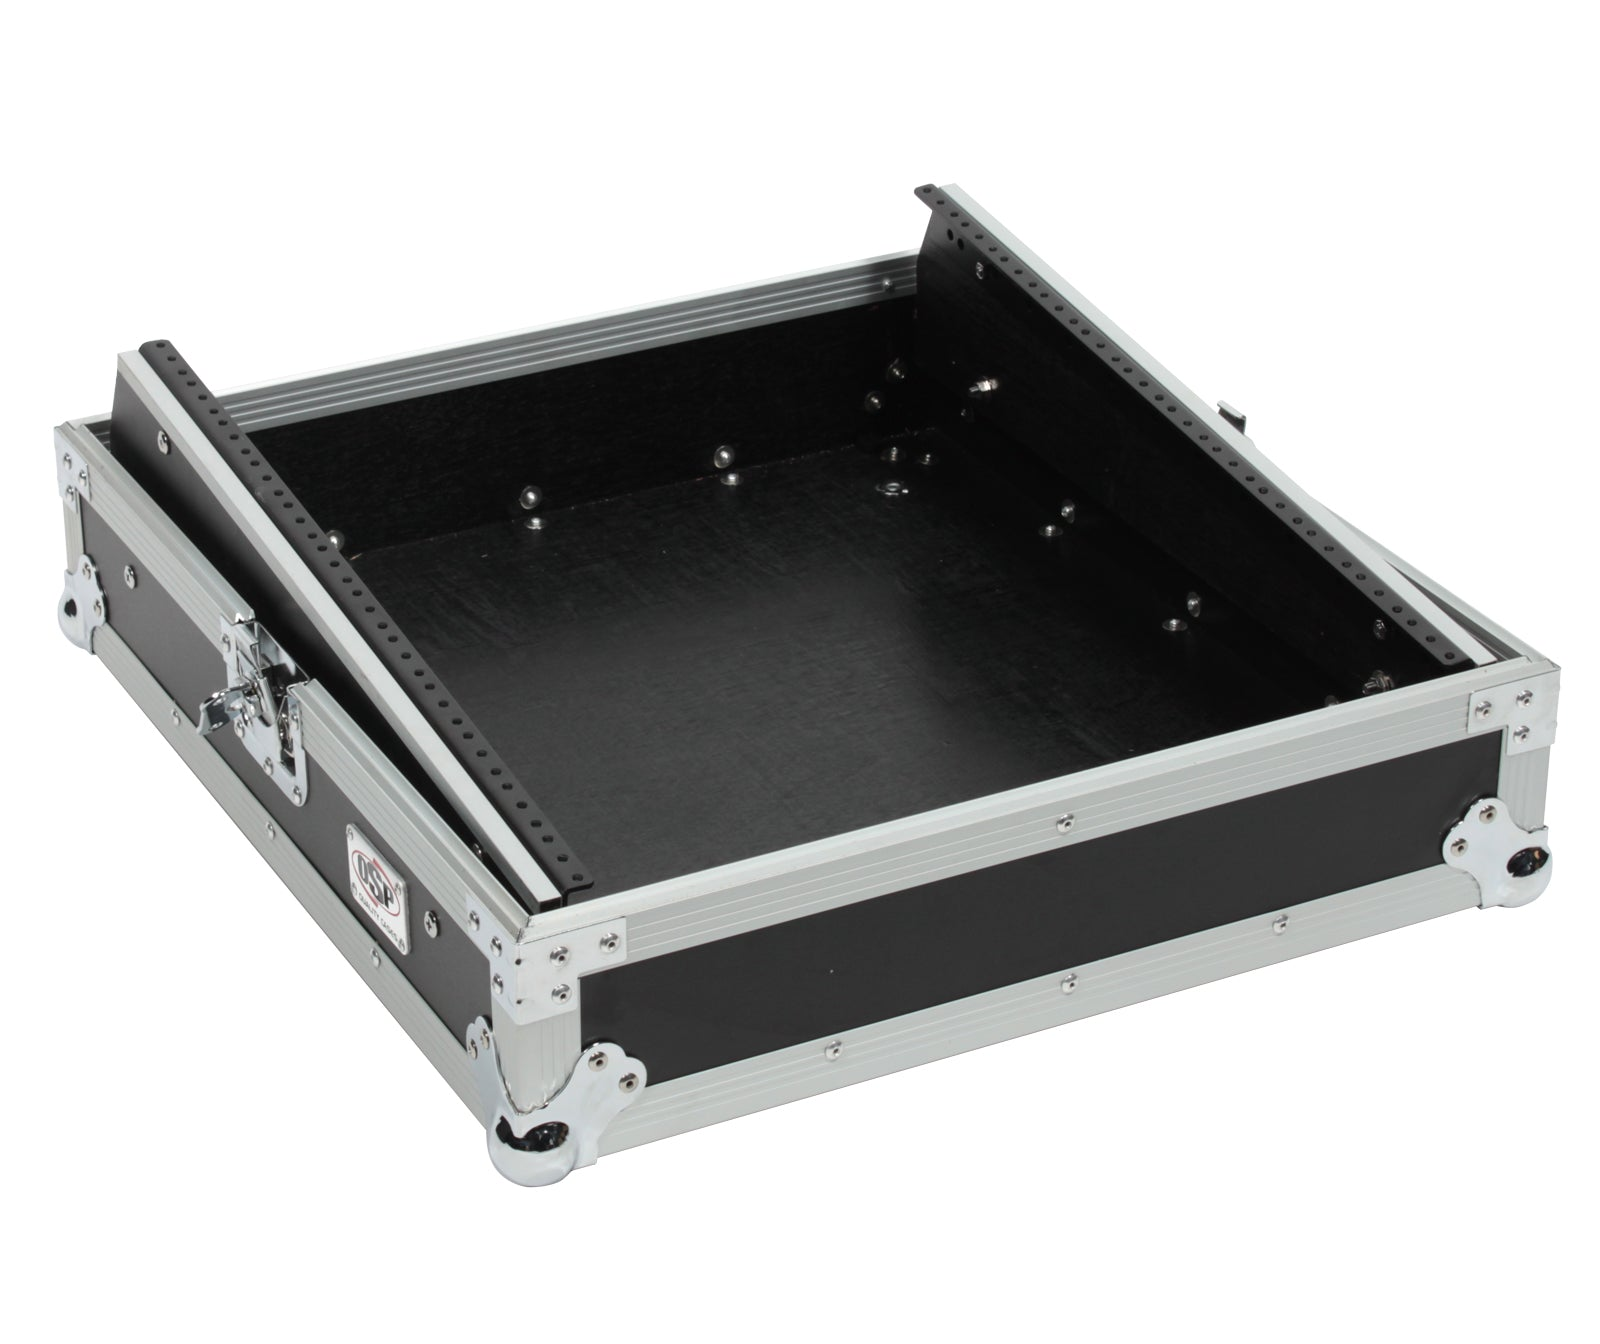 OSP MC12U-0 Slant Rack Mount Mixer Case